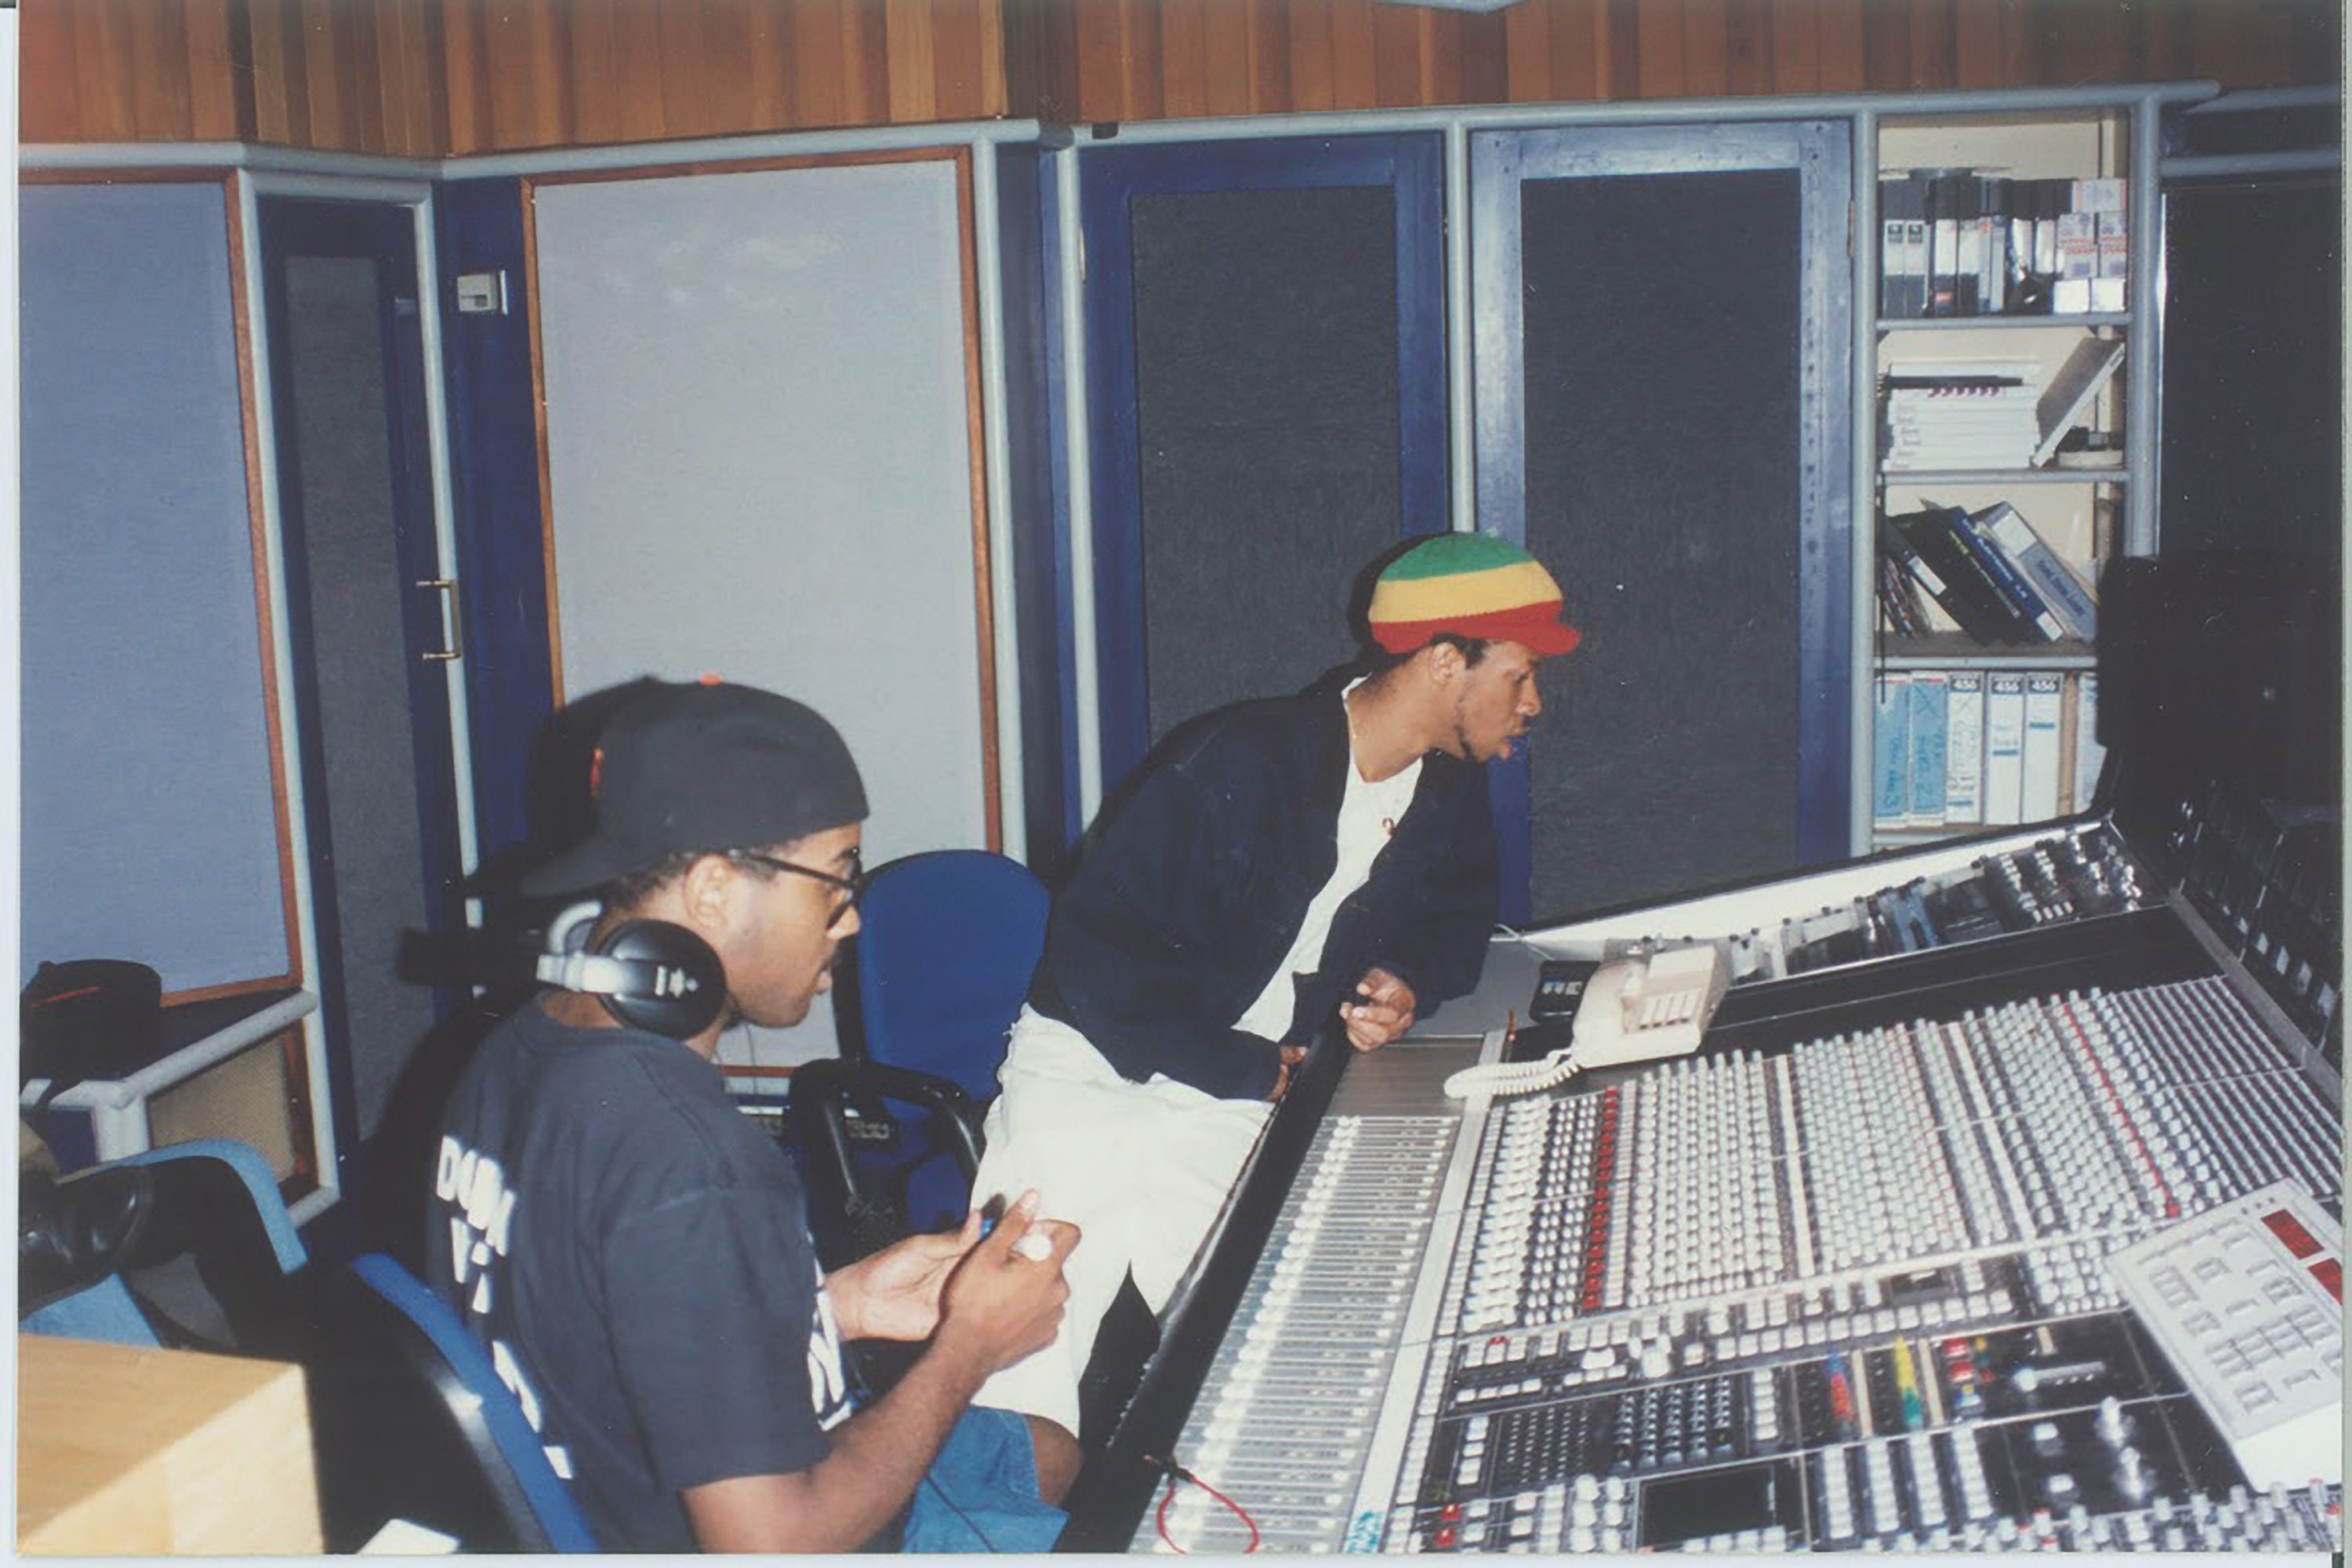 The group recording Breaking Atoms in studio.